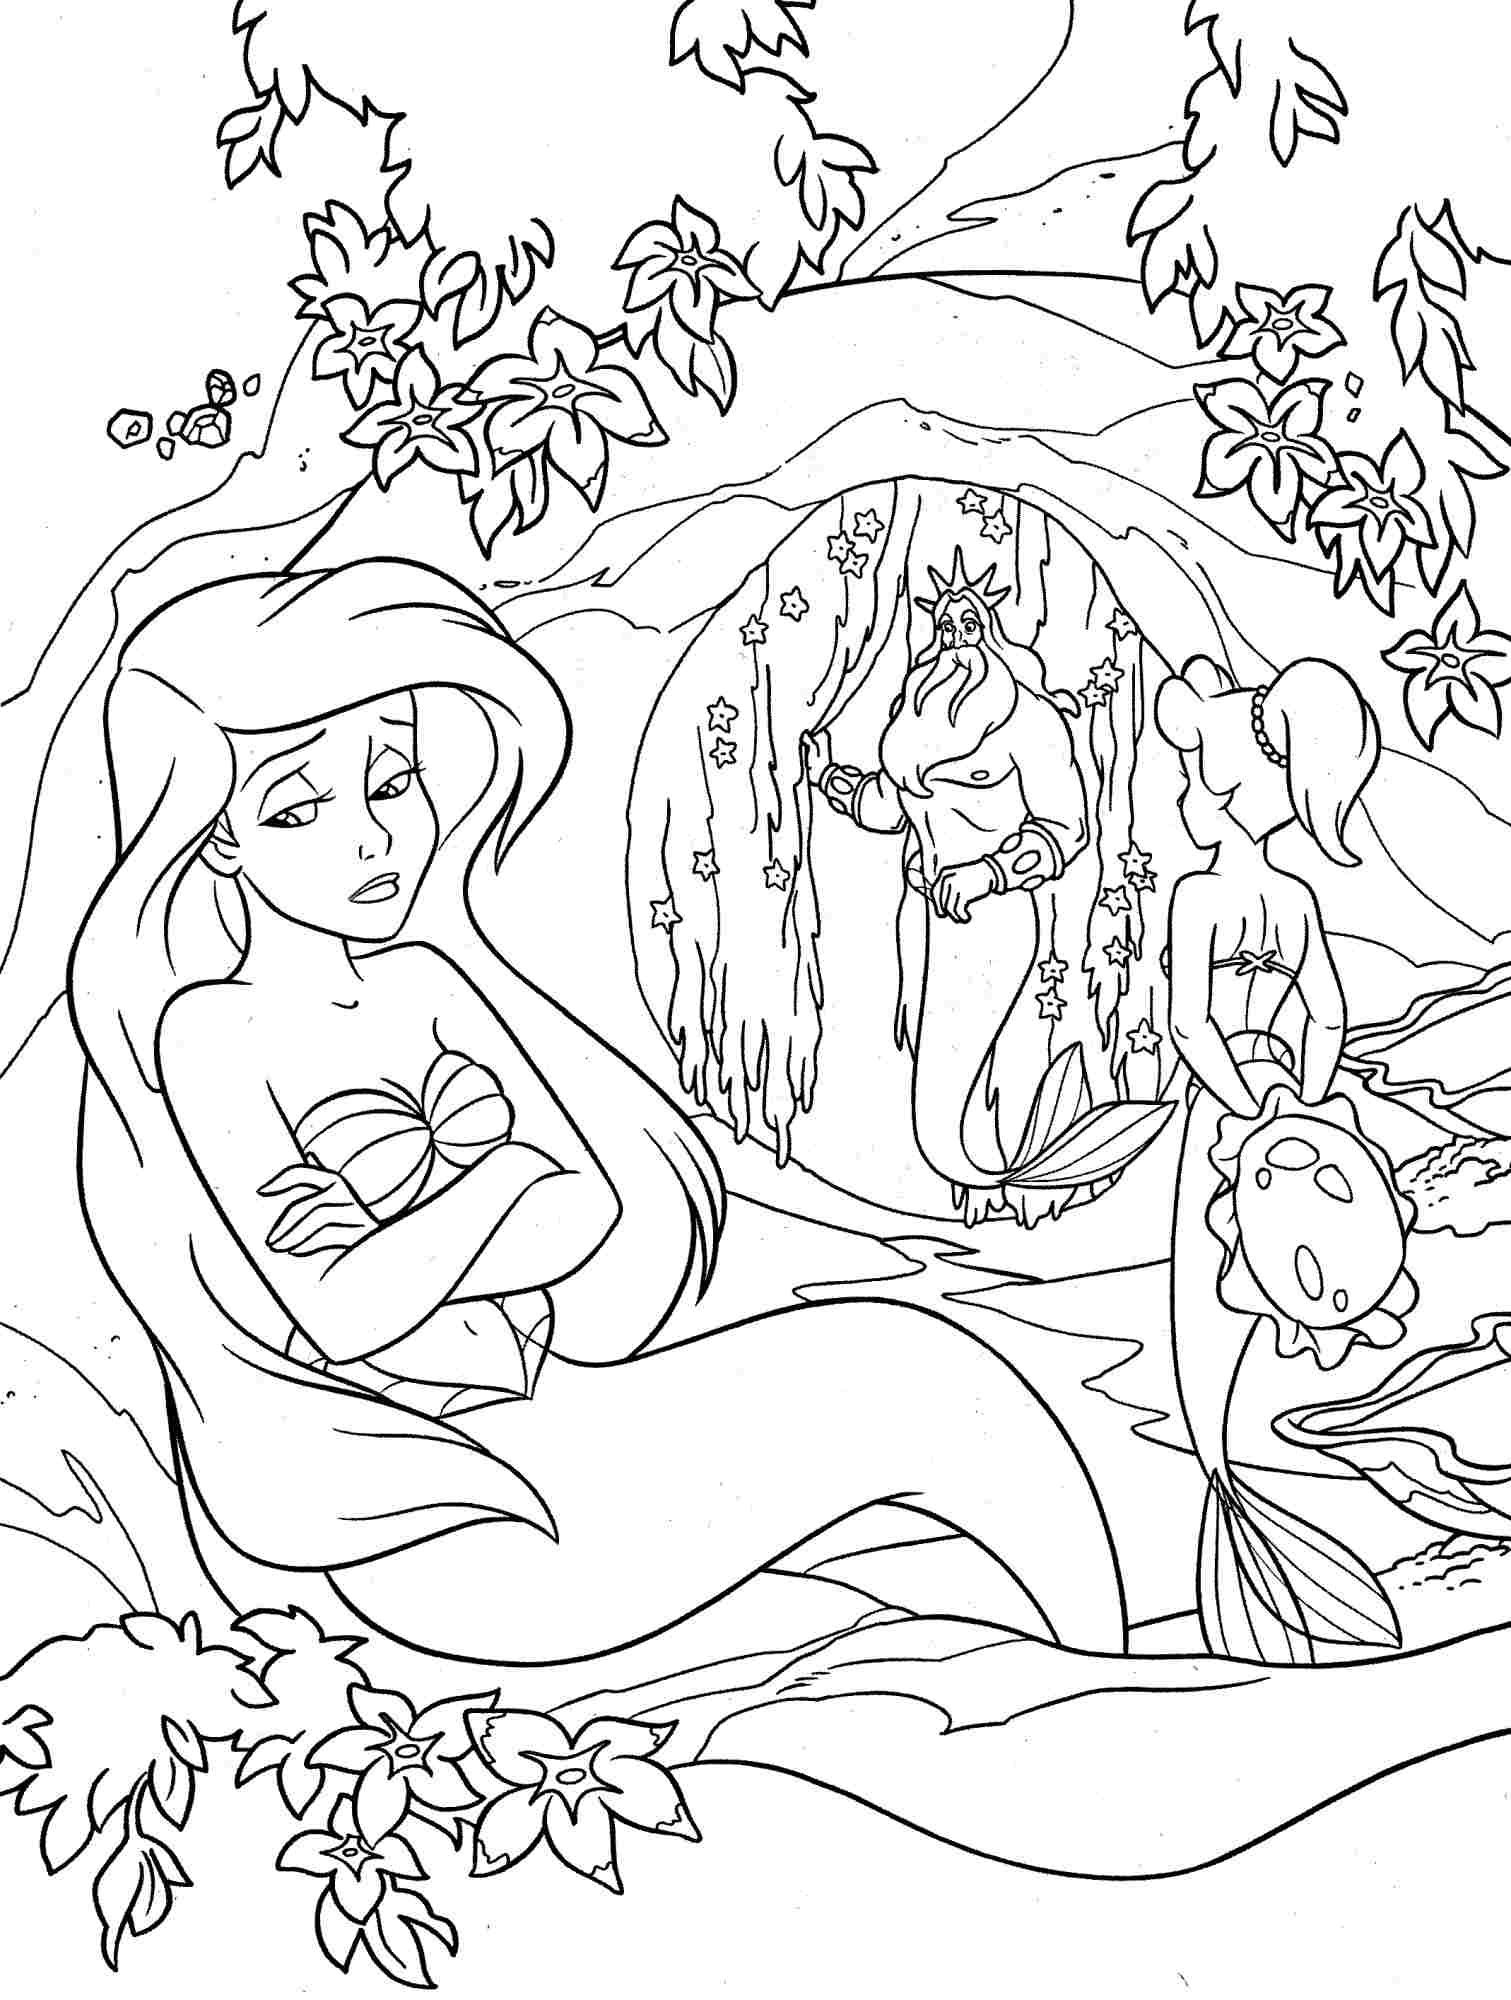 Podobny Obraz Ariel Coloring Pages Princess Coloring Pages Disney Princess Coloring Pages